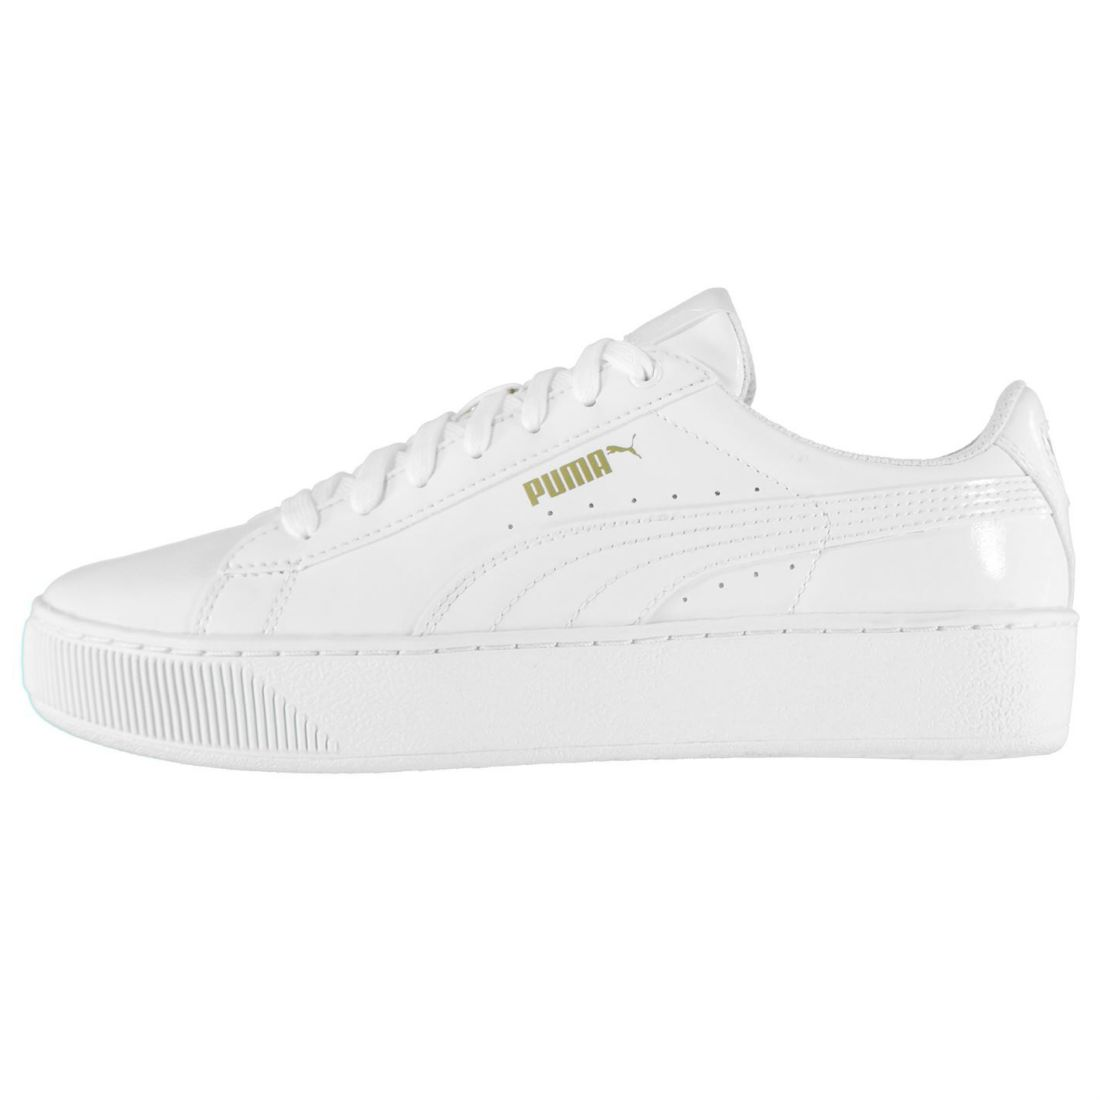 5d35697e5a60 Details about Puma Womens Patent Platform Trainers Shoes Lace Up Padded  Ankle Collar